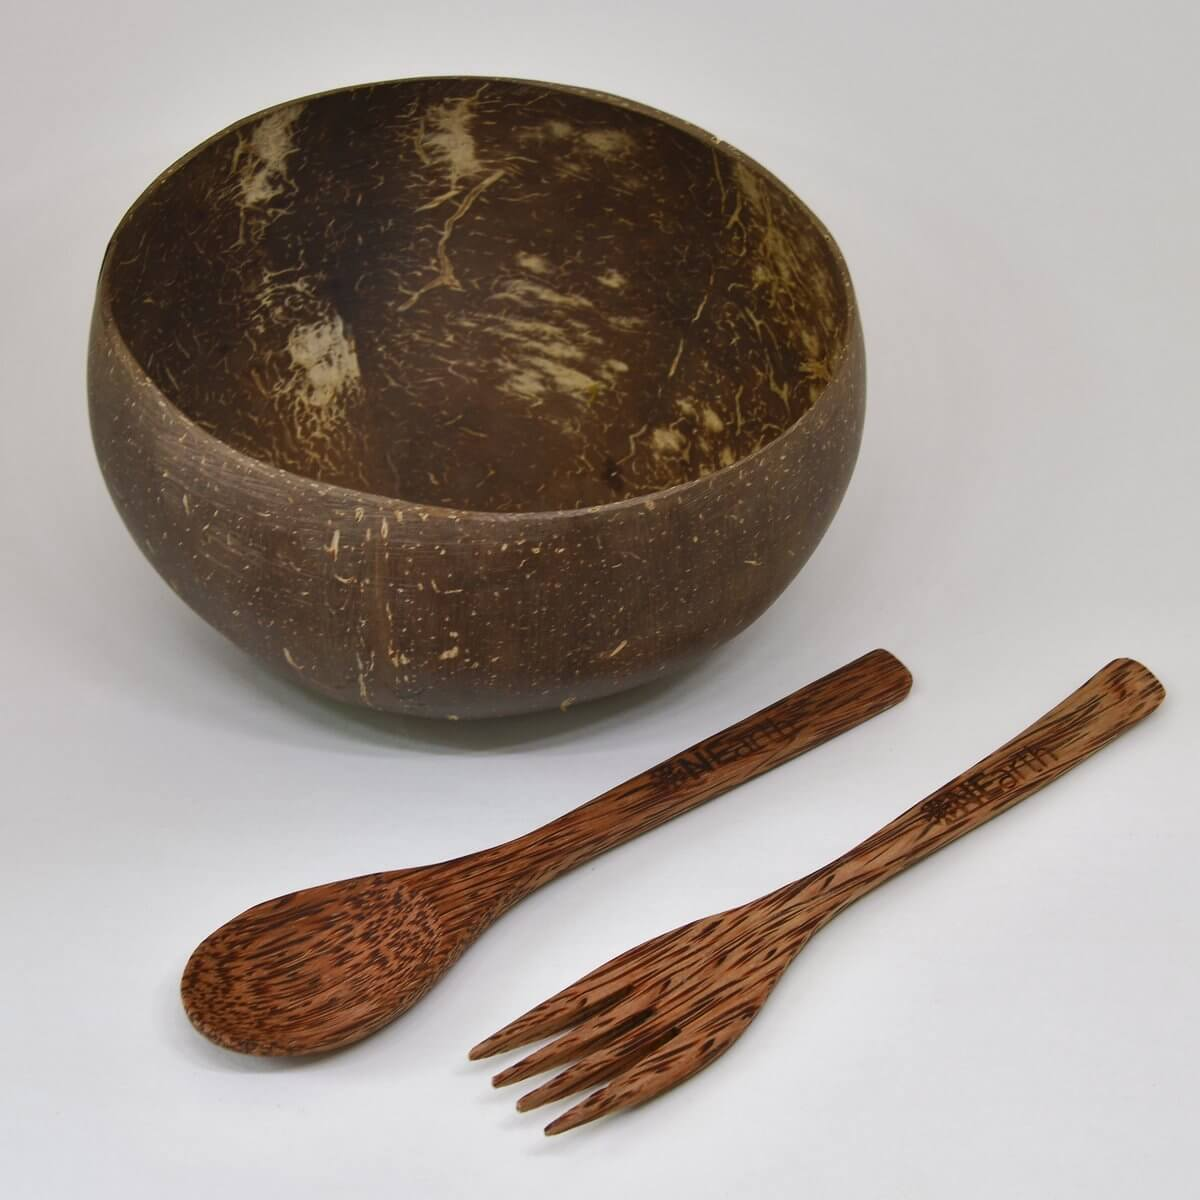 Coconut Bowl with Cutlery